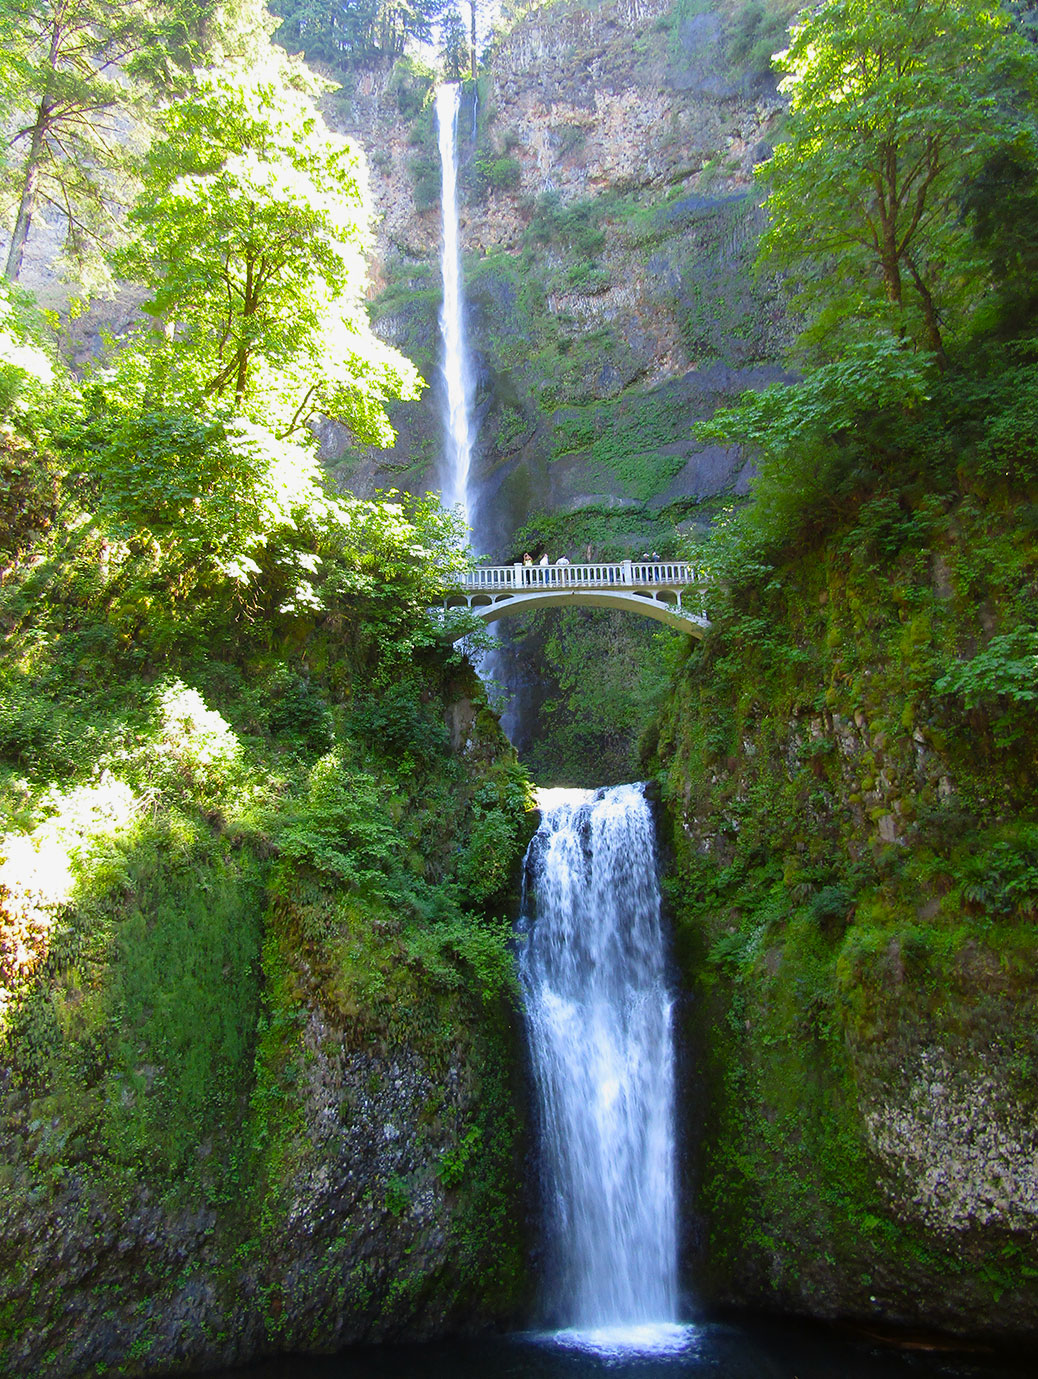 Multnomah Falls is Oregon's tallest waterfall at an estimated 620 feet tall. It flows year-round, making it a popular tourist destination all year long.